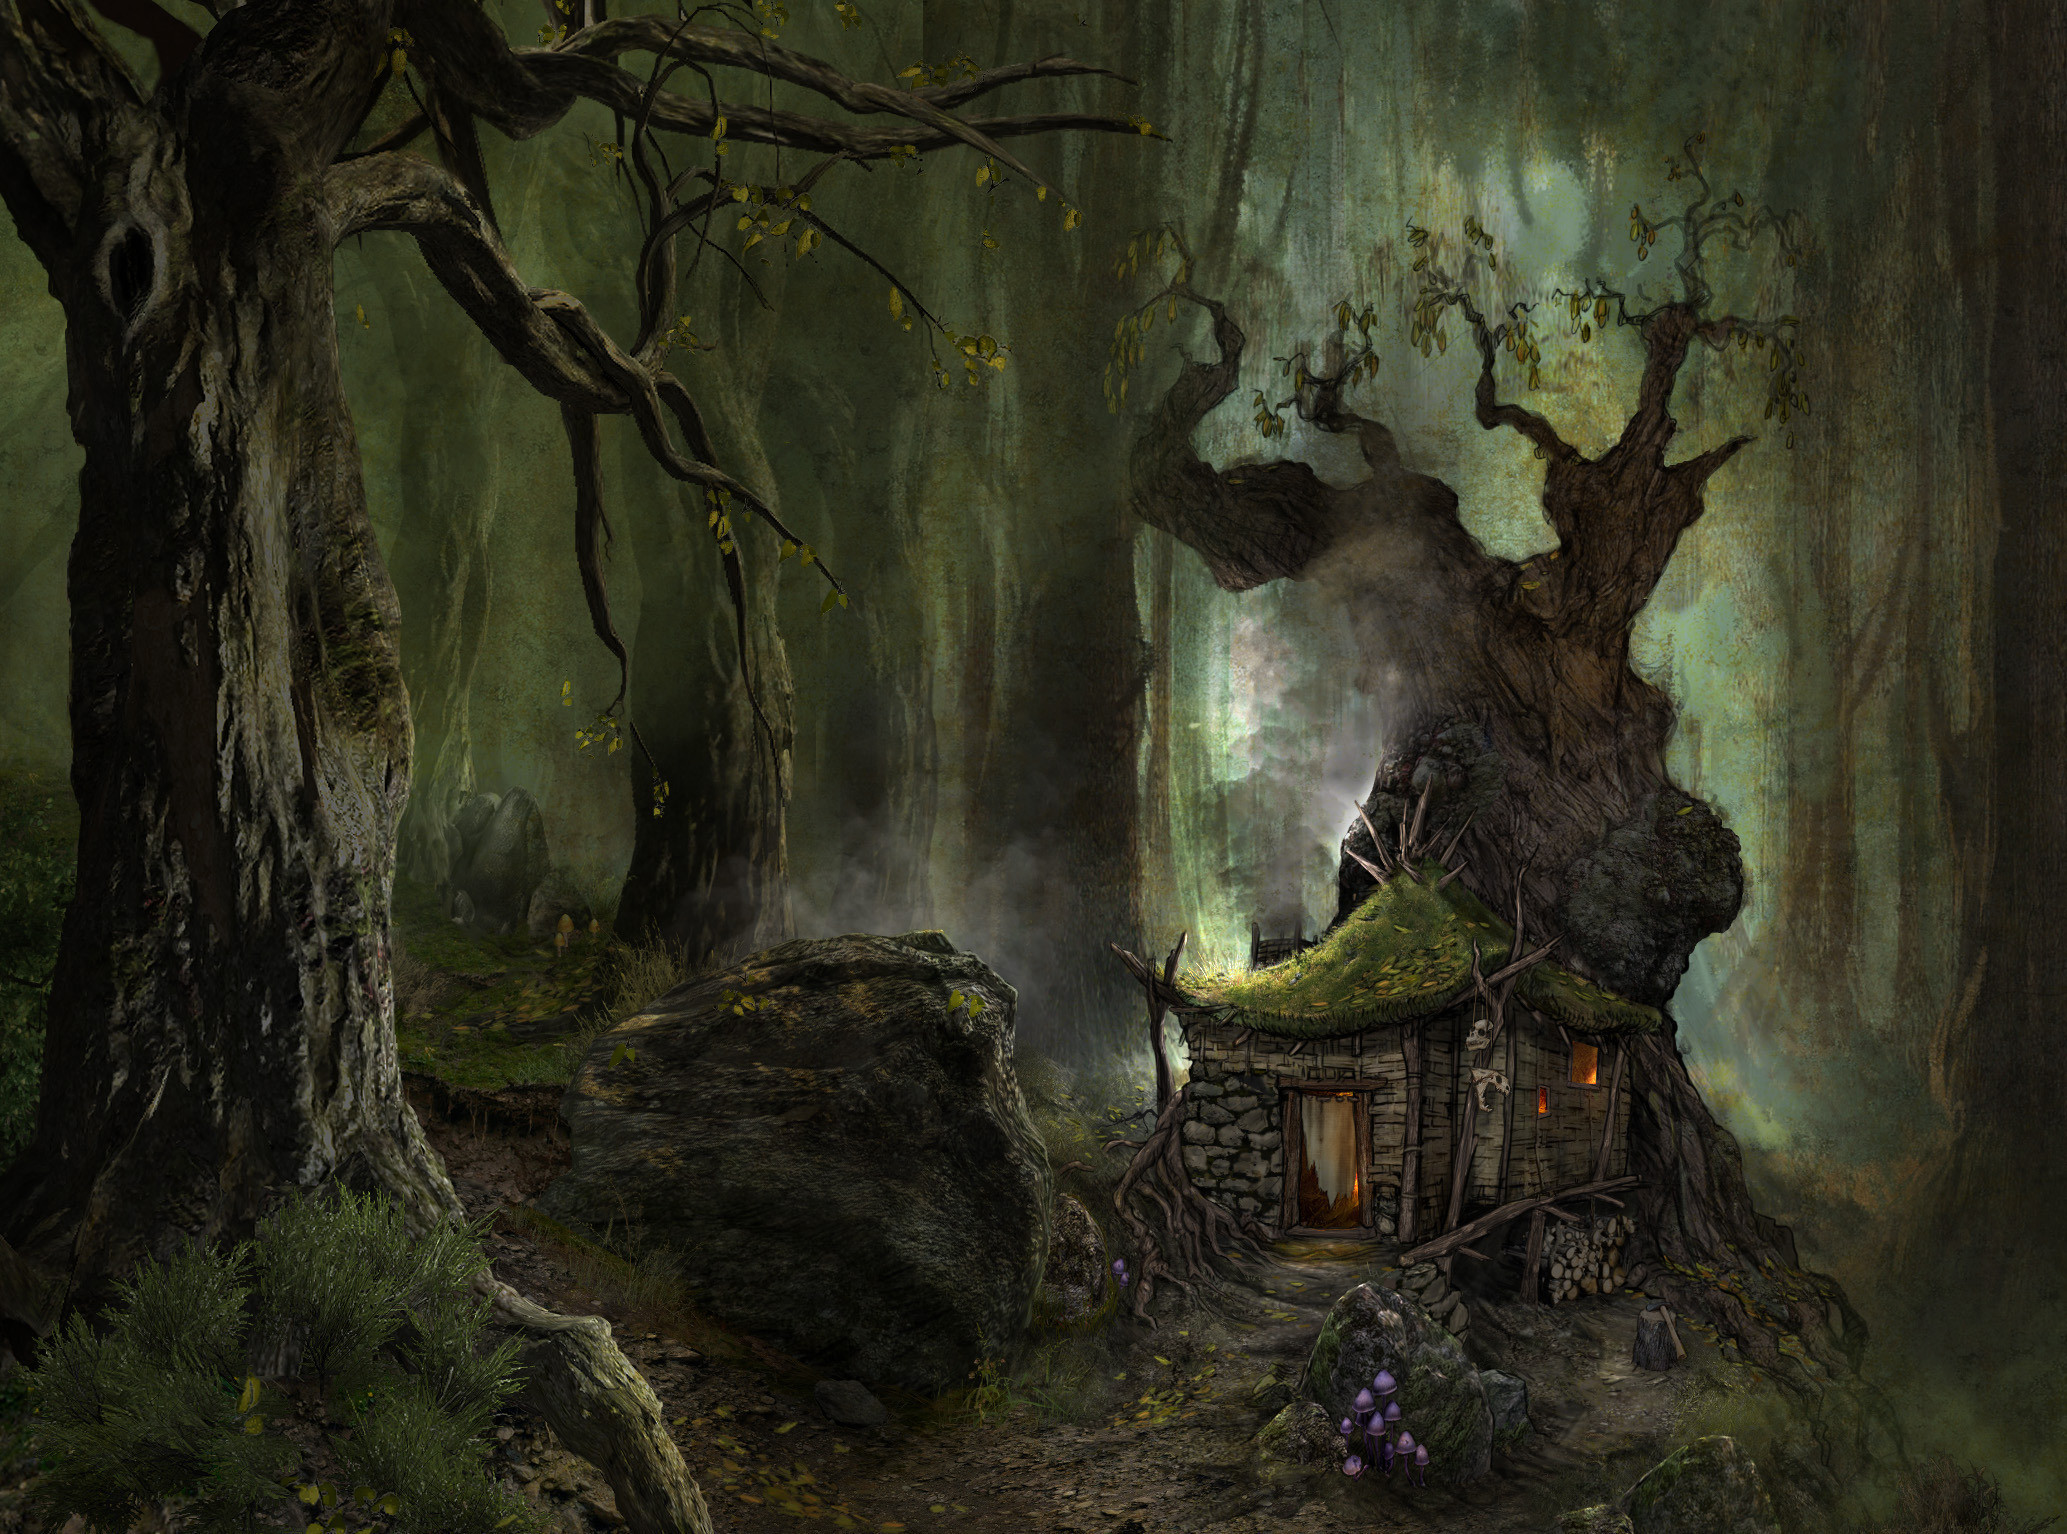 Gothic Fantasy Art | ArcaniA Gothic 4 fantasy art landscapes forest trees  wods paintings .